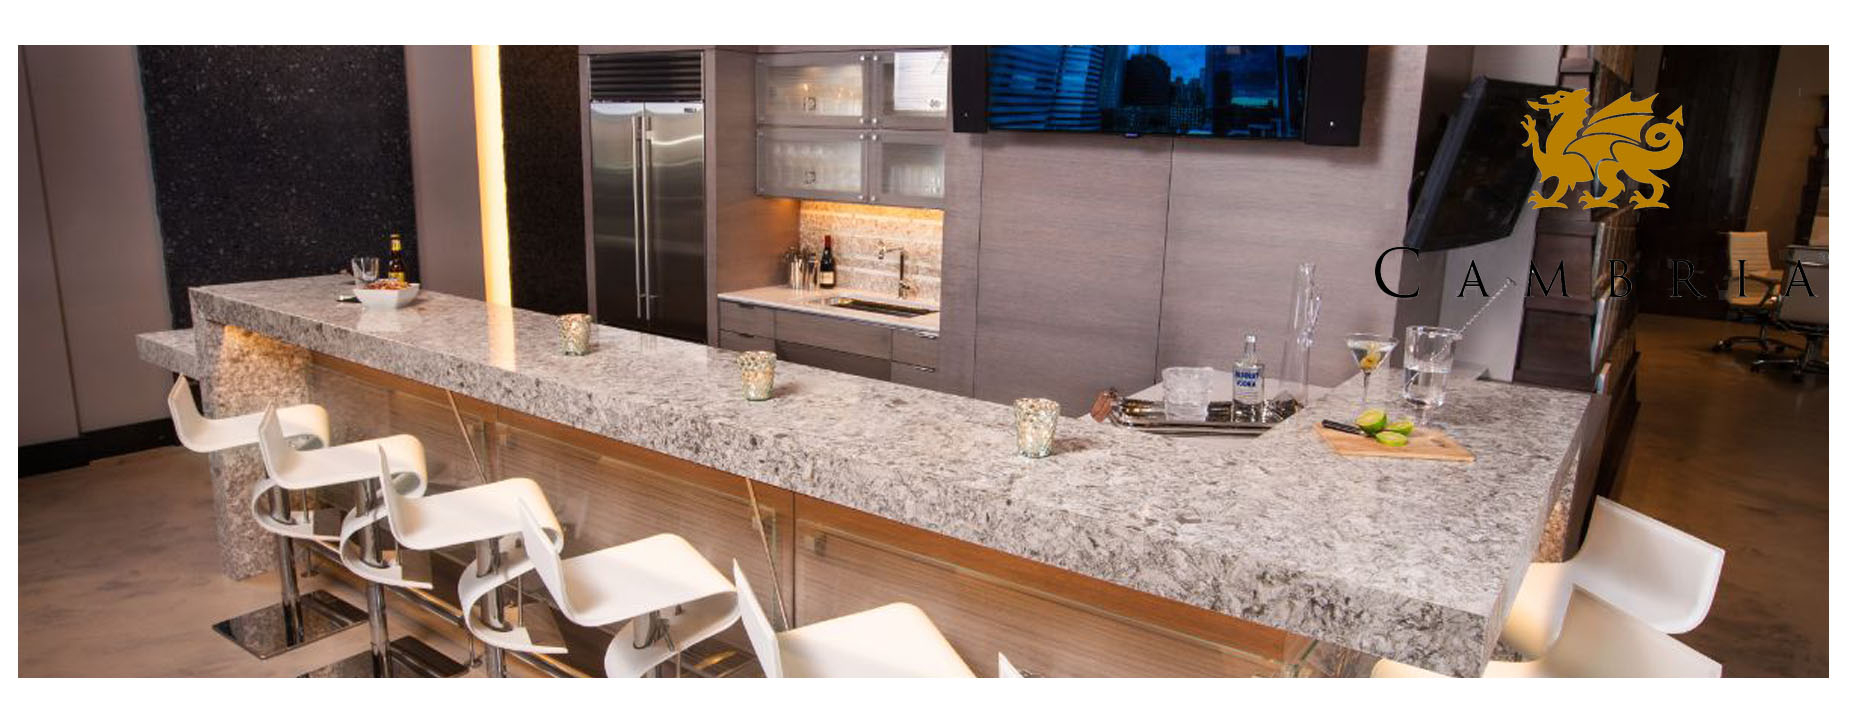 Kitchen Countertops Images  Great Stone Kitchen Countertops